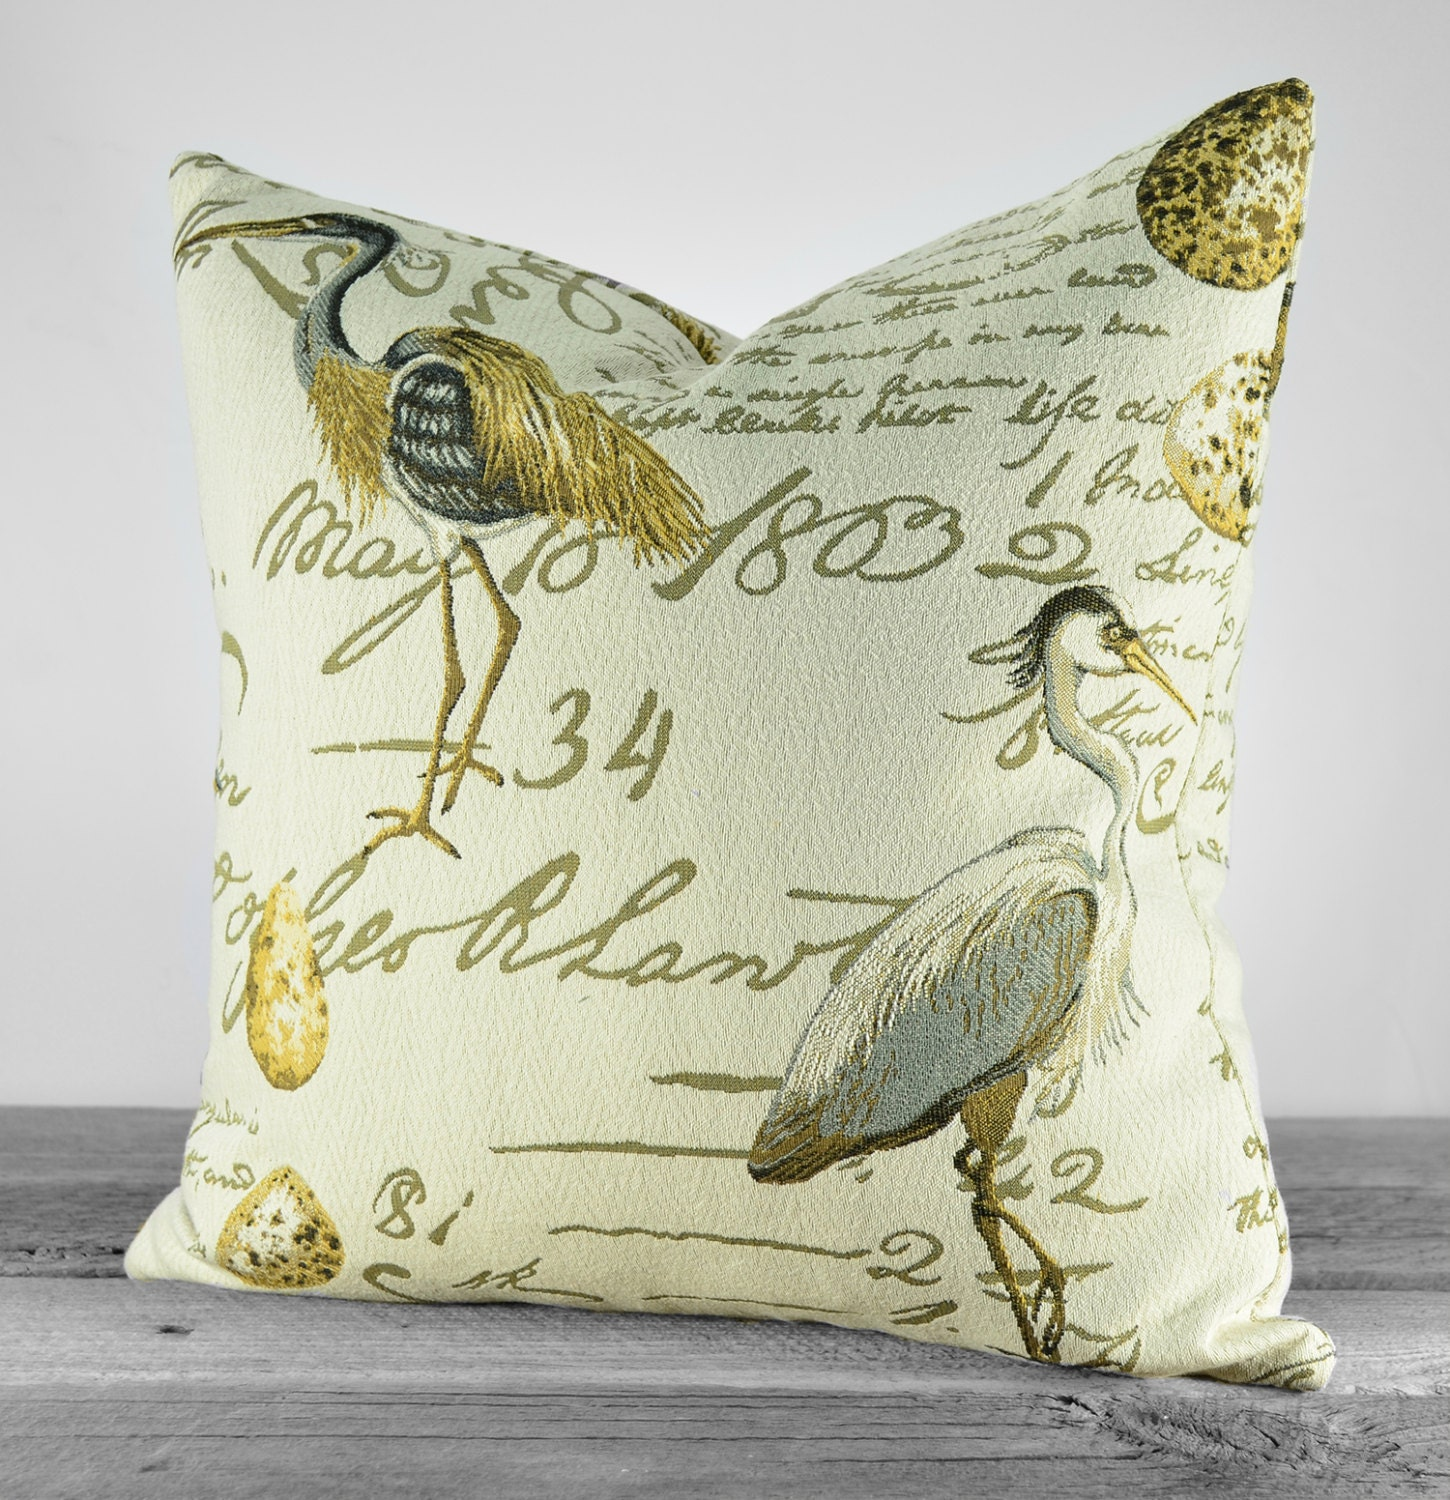 Decorative Pillows With Bird Design : Decorative Bird Pillow Cover Coastal Birds with Script